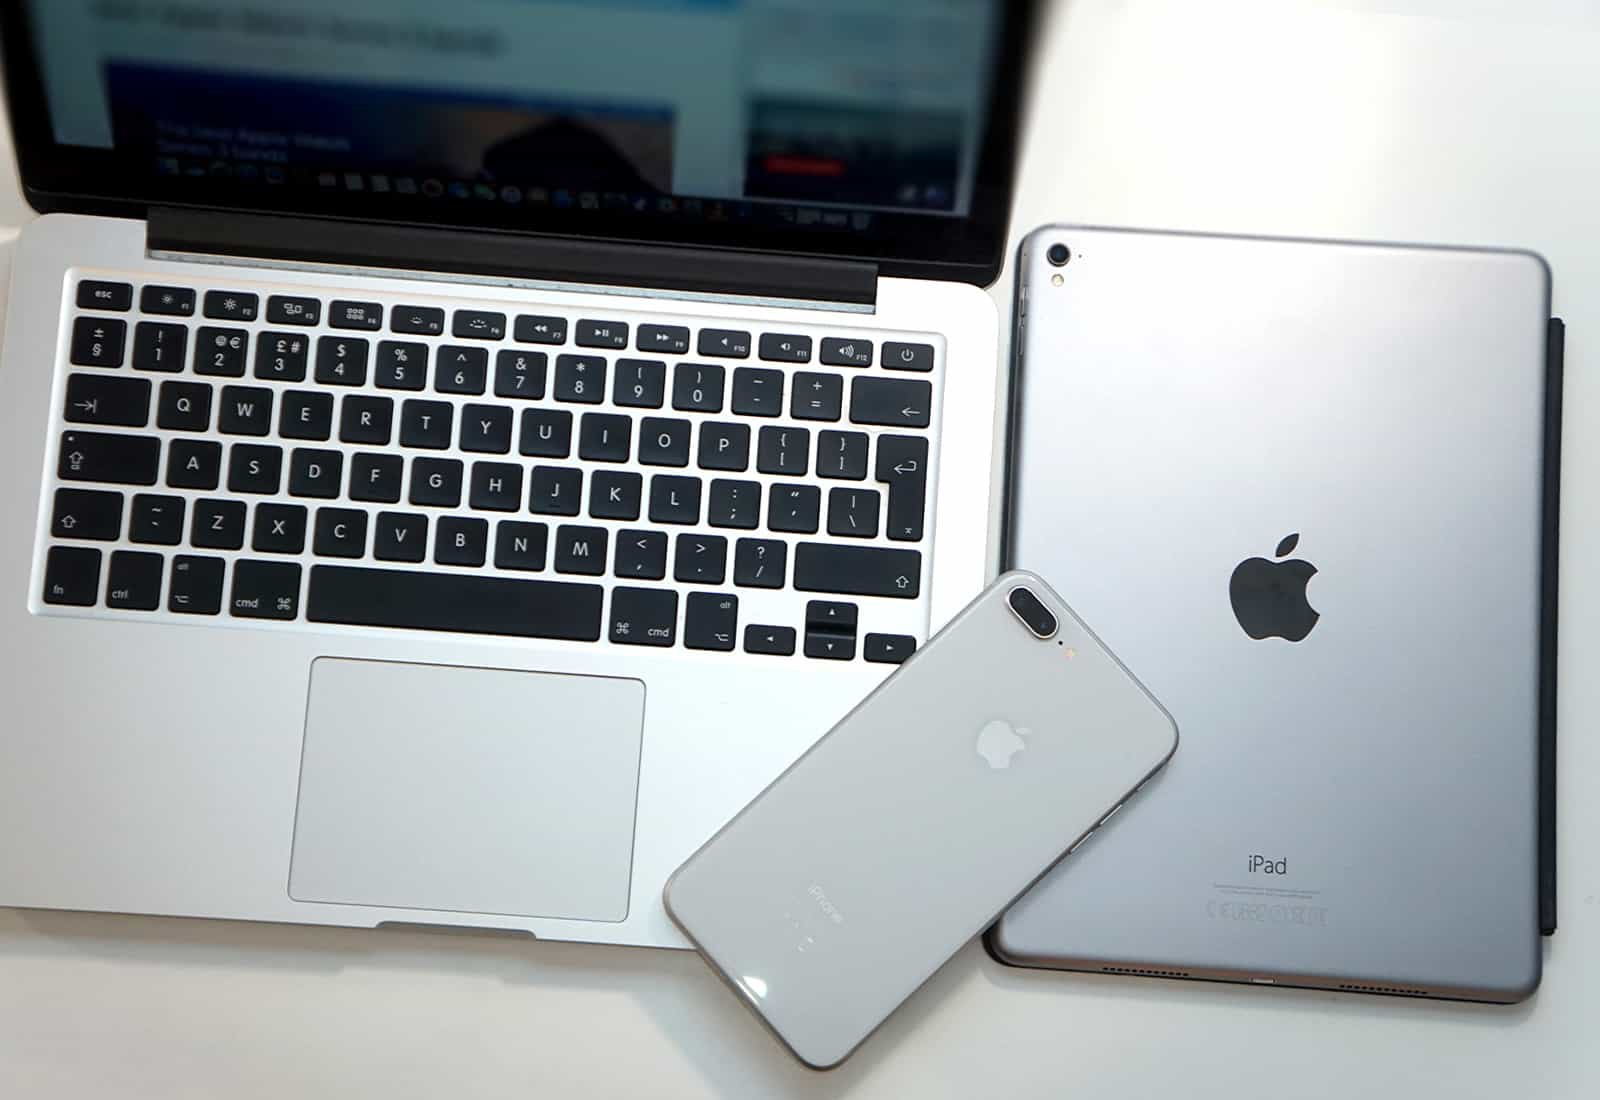 SELL YOUR APPLE IPHONE OR MAC – WE PAY TOP CASH